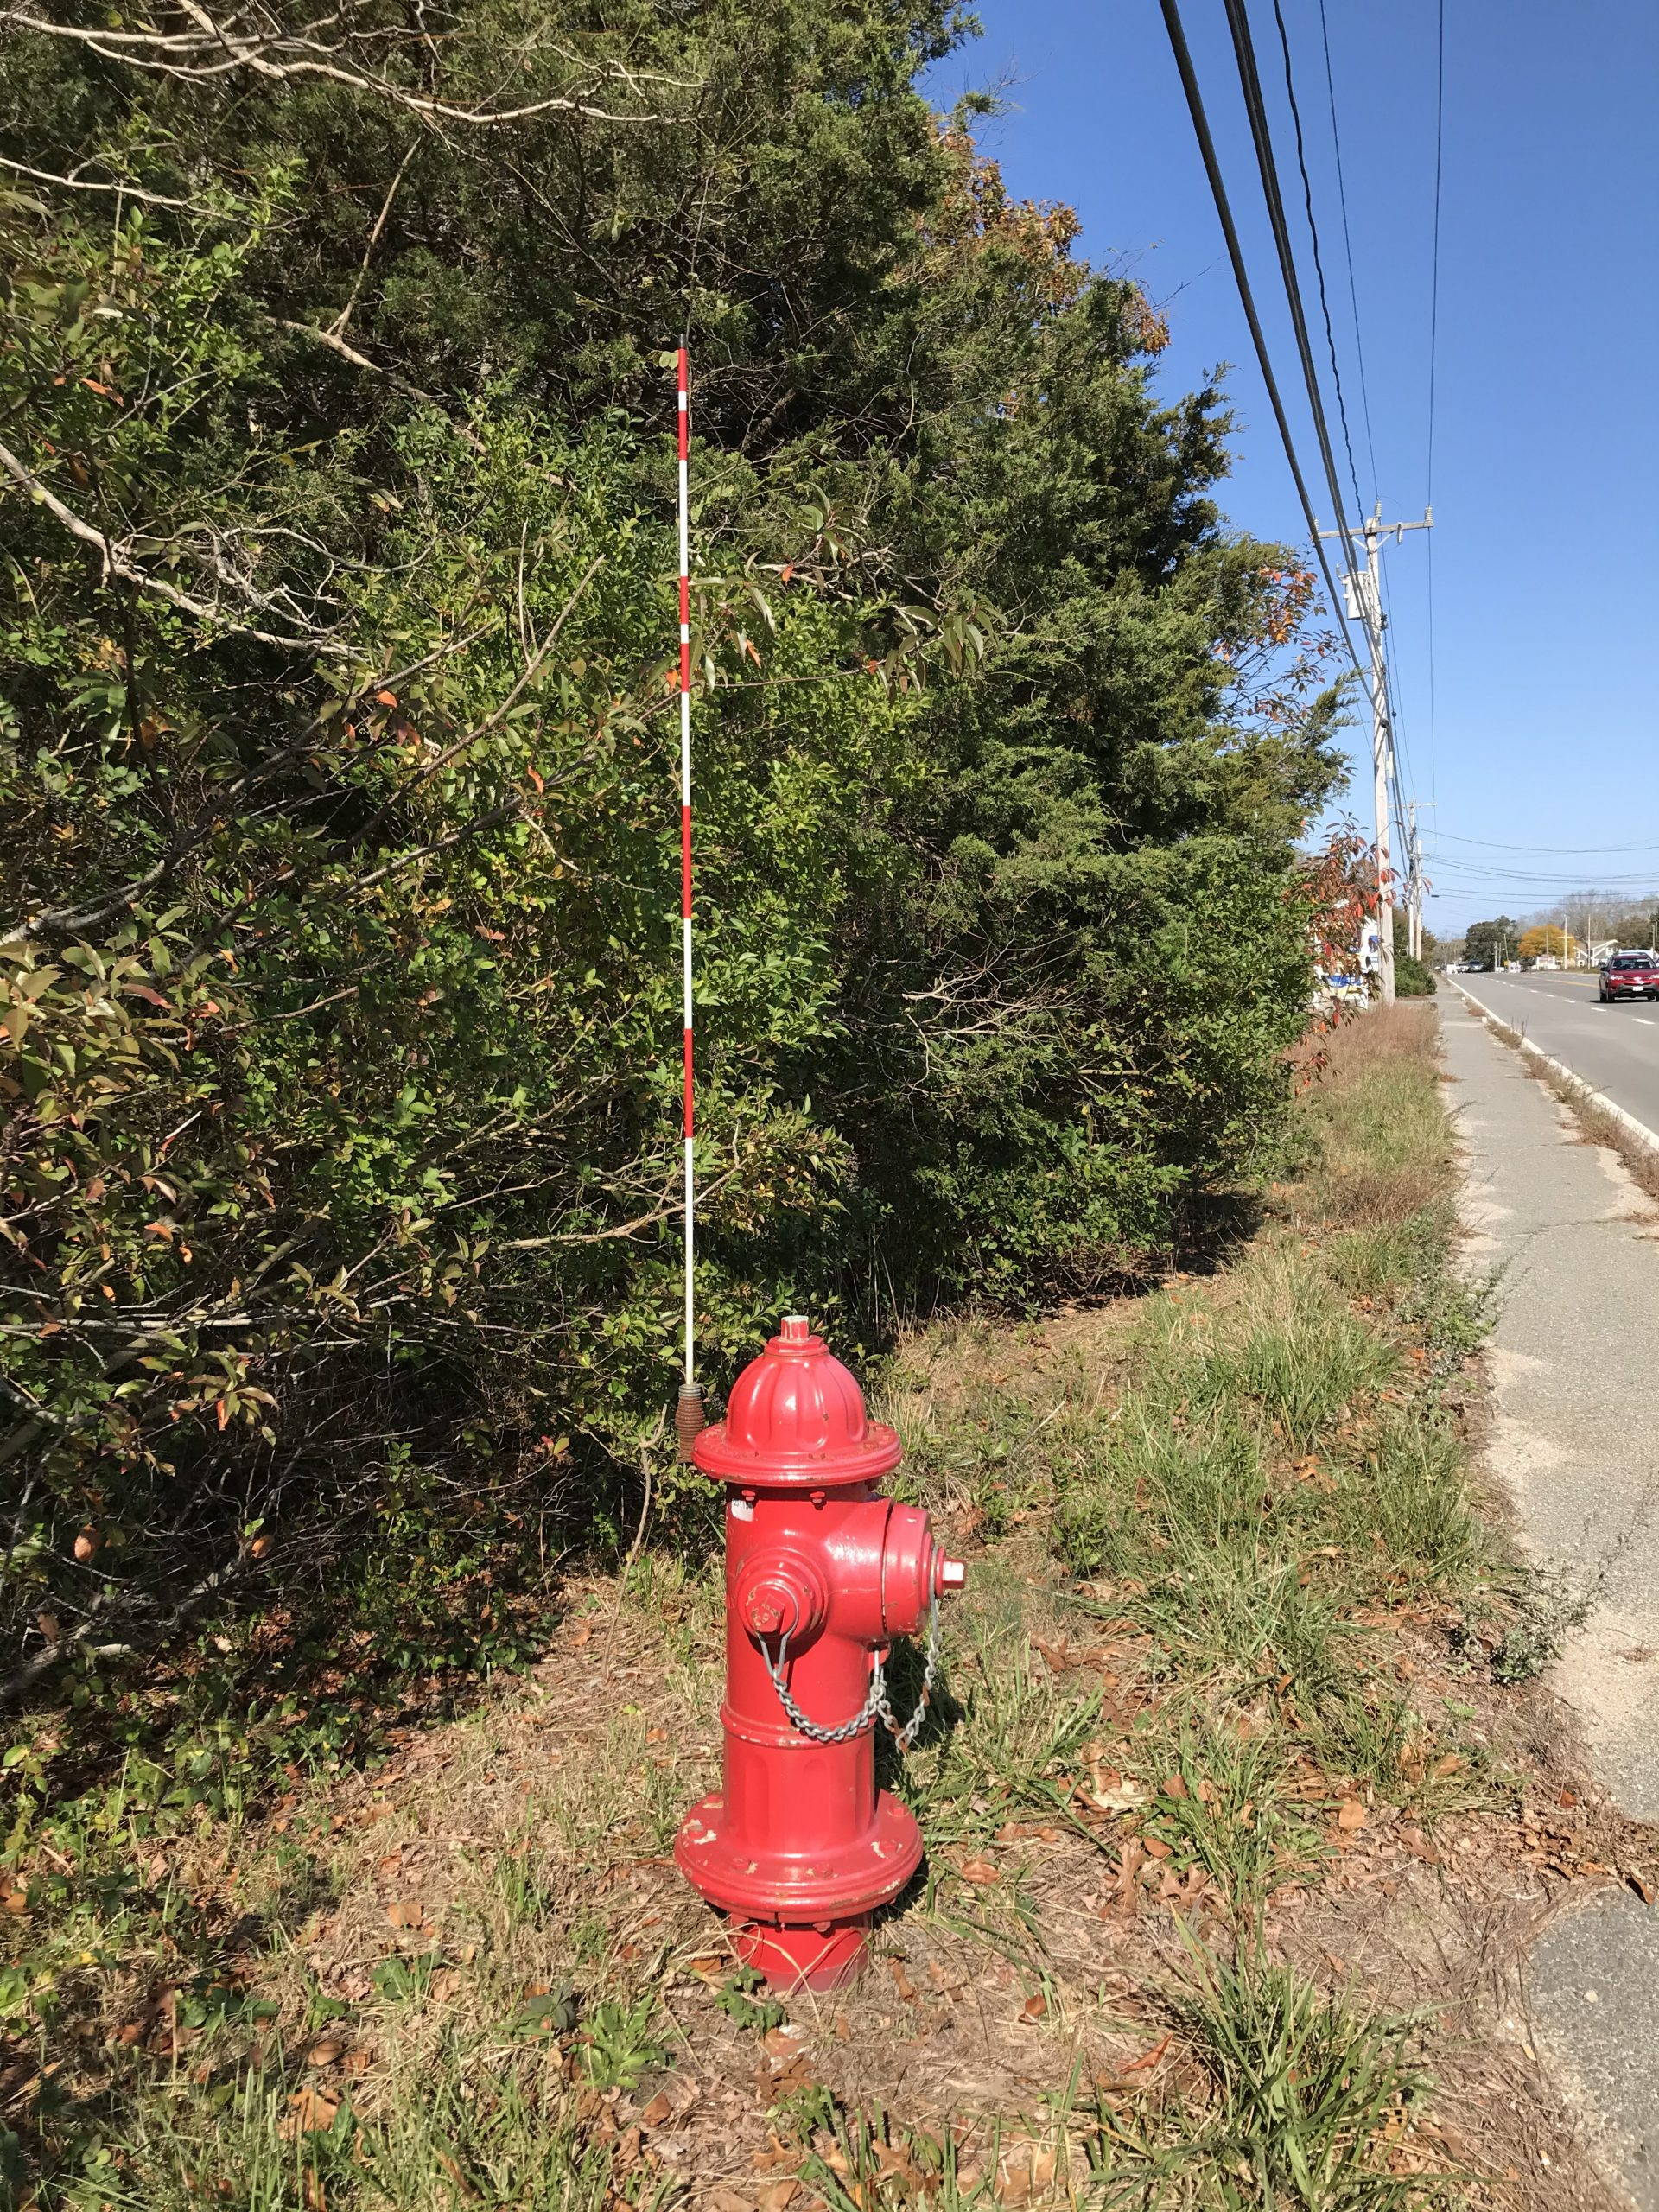 A red fire hydrant with an antenna sticking up from it